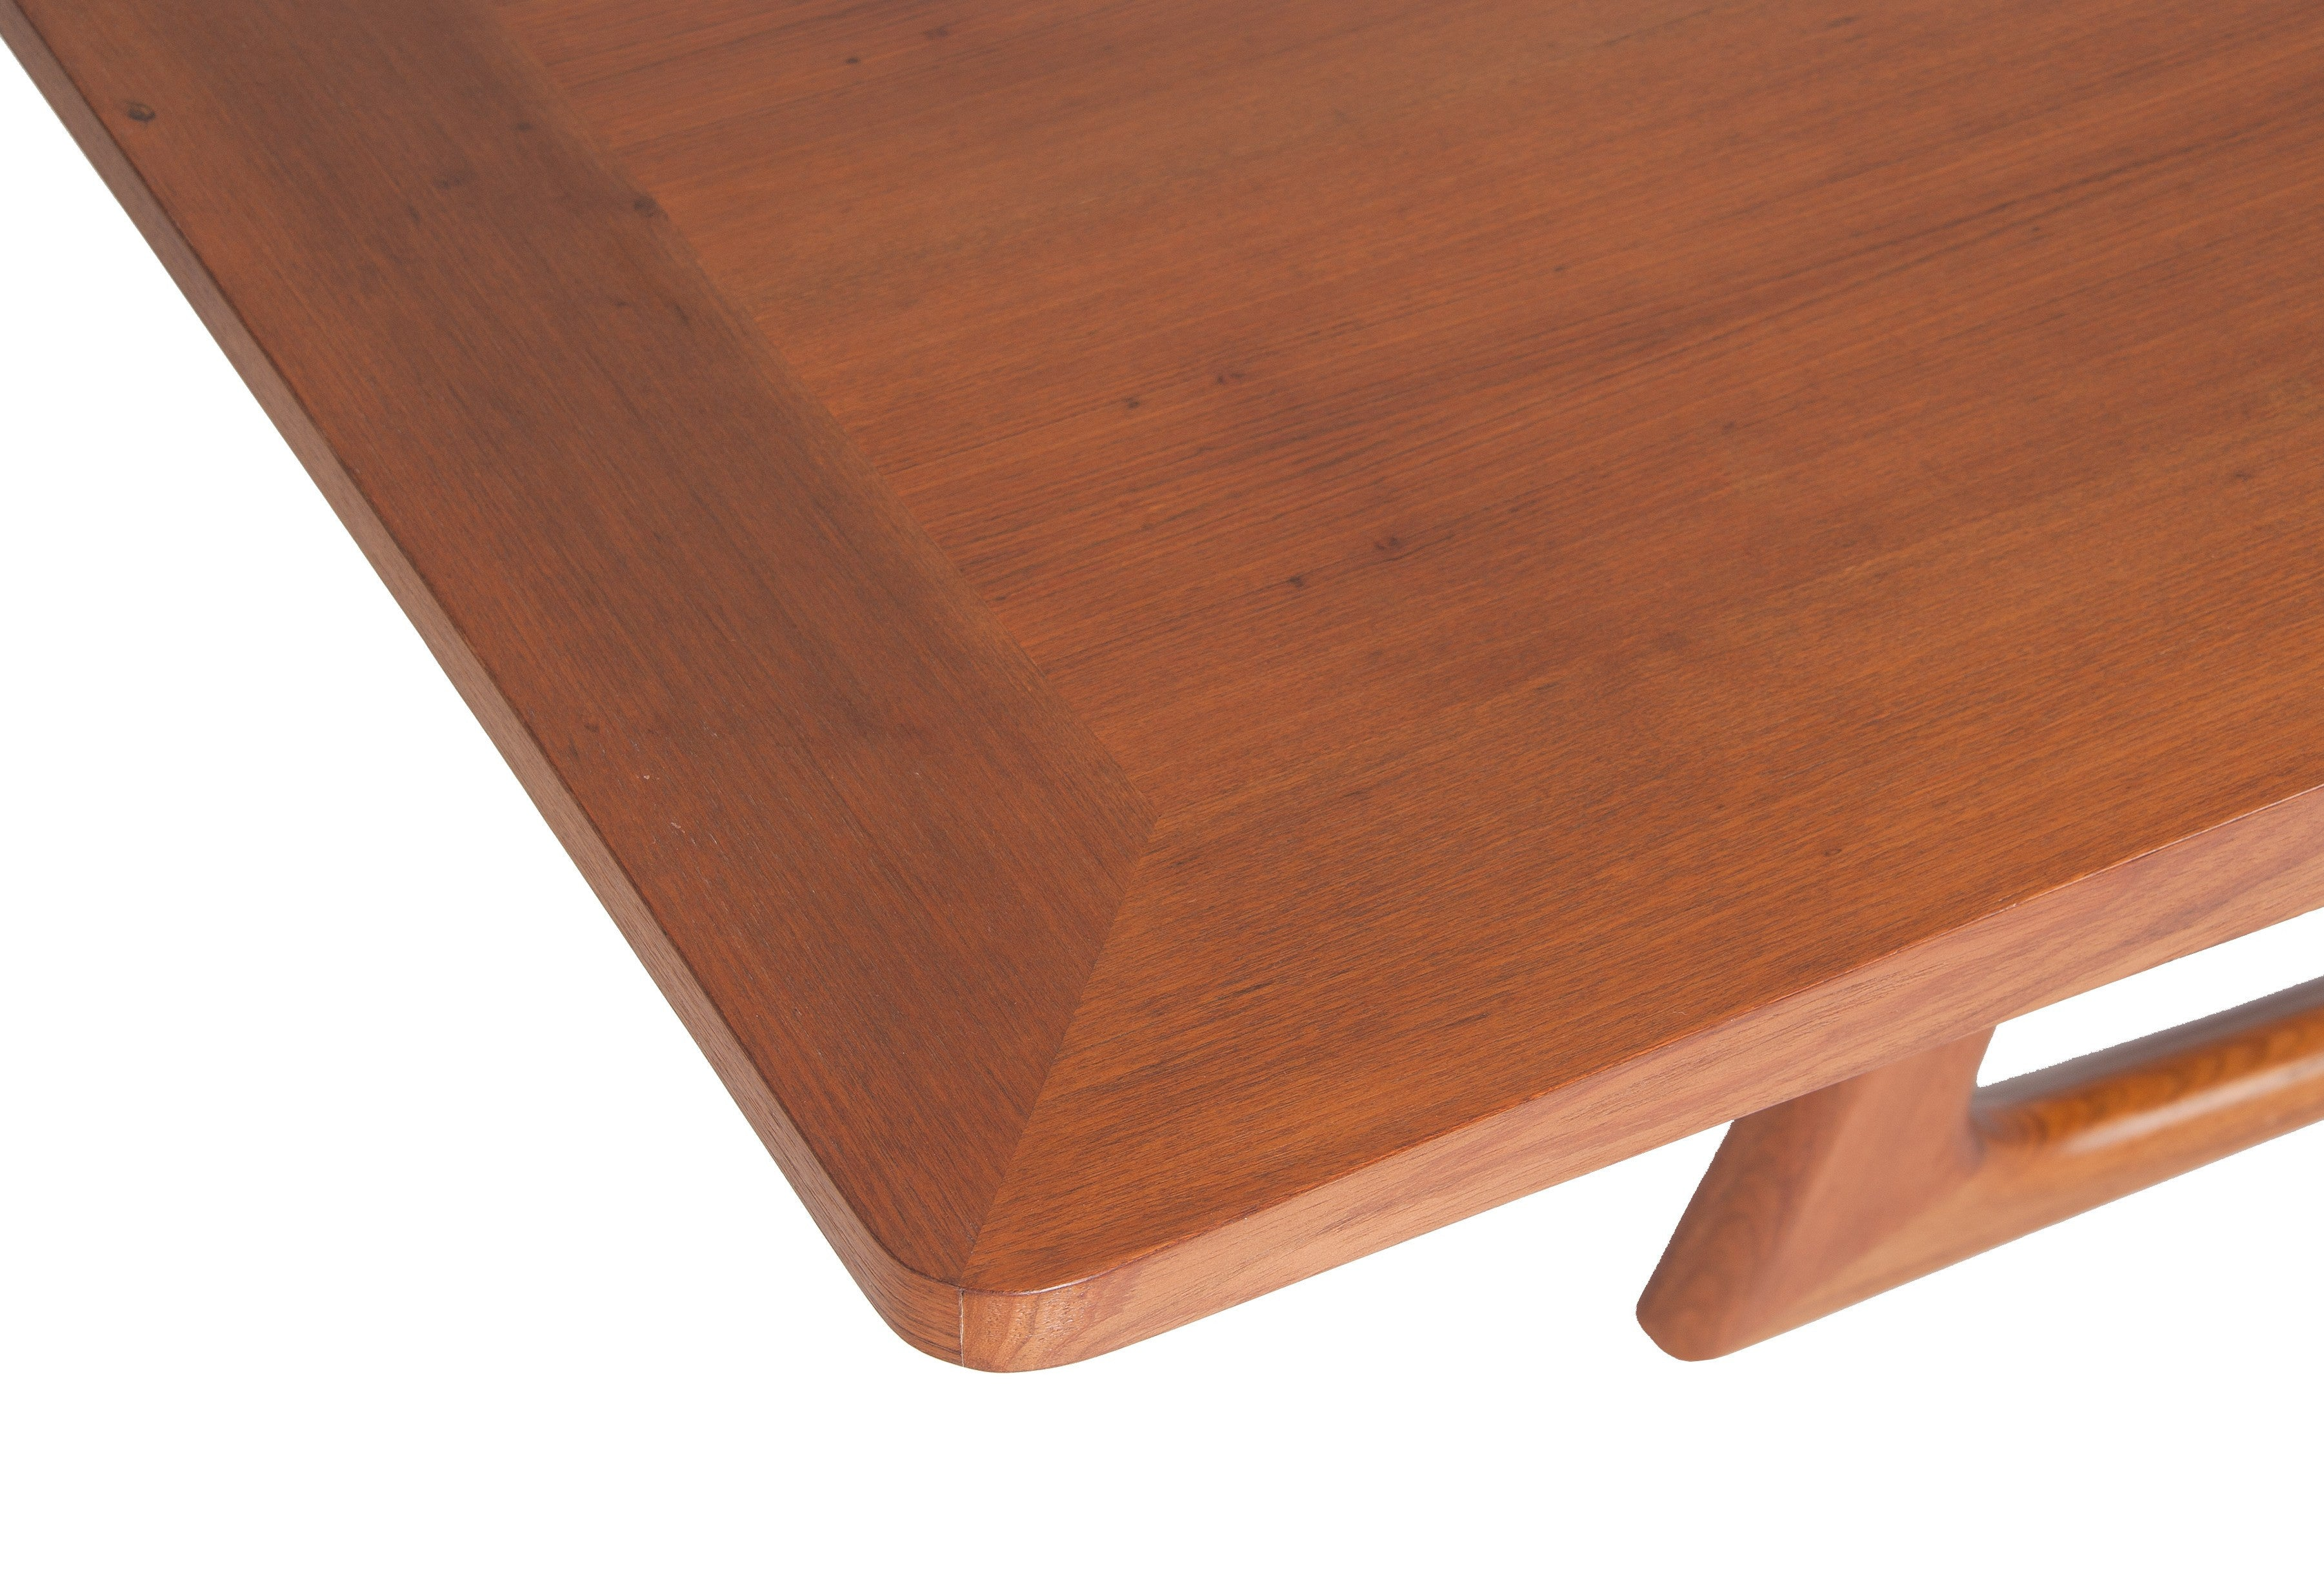 Mangue dining table by Rejane Carvalho Leite